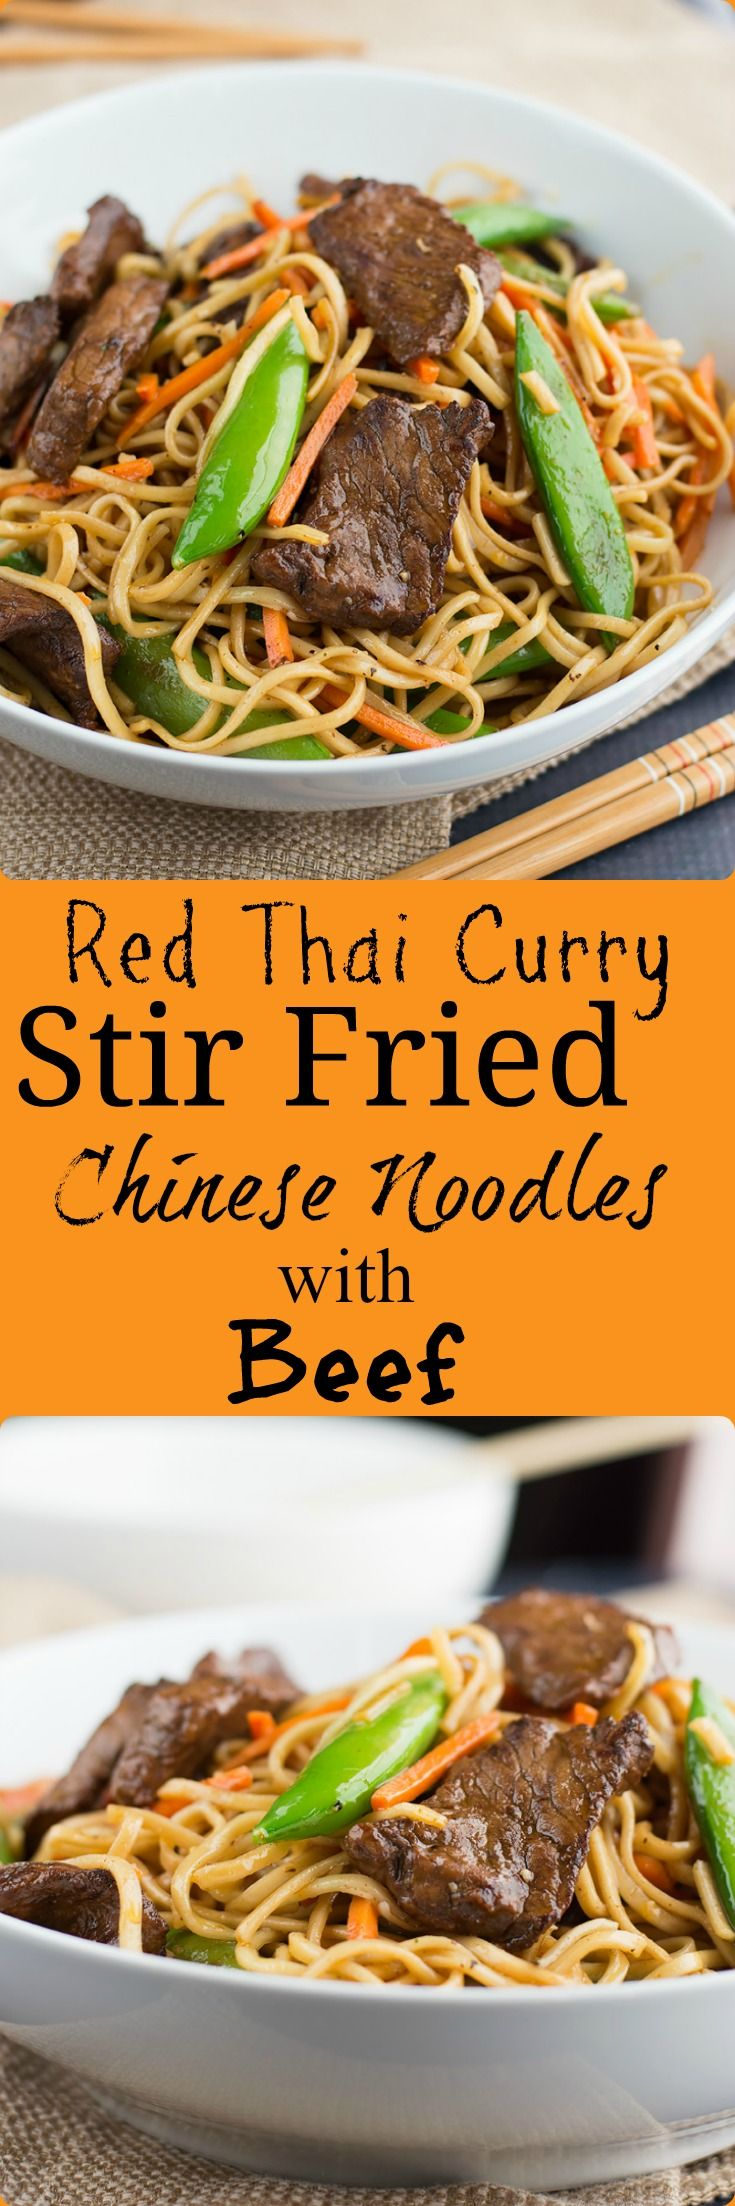 These Red Thai Curry Stir Fried Noodles with Beef has a tasty spicy red curry sauce and beef marinade that brings your stir fry to life!